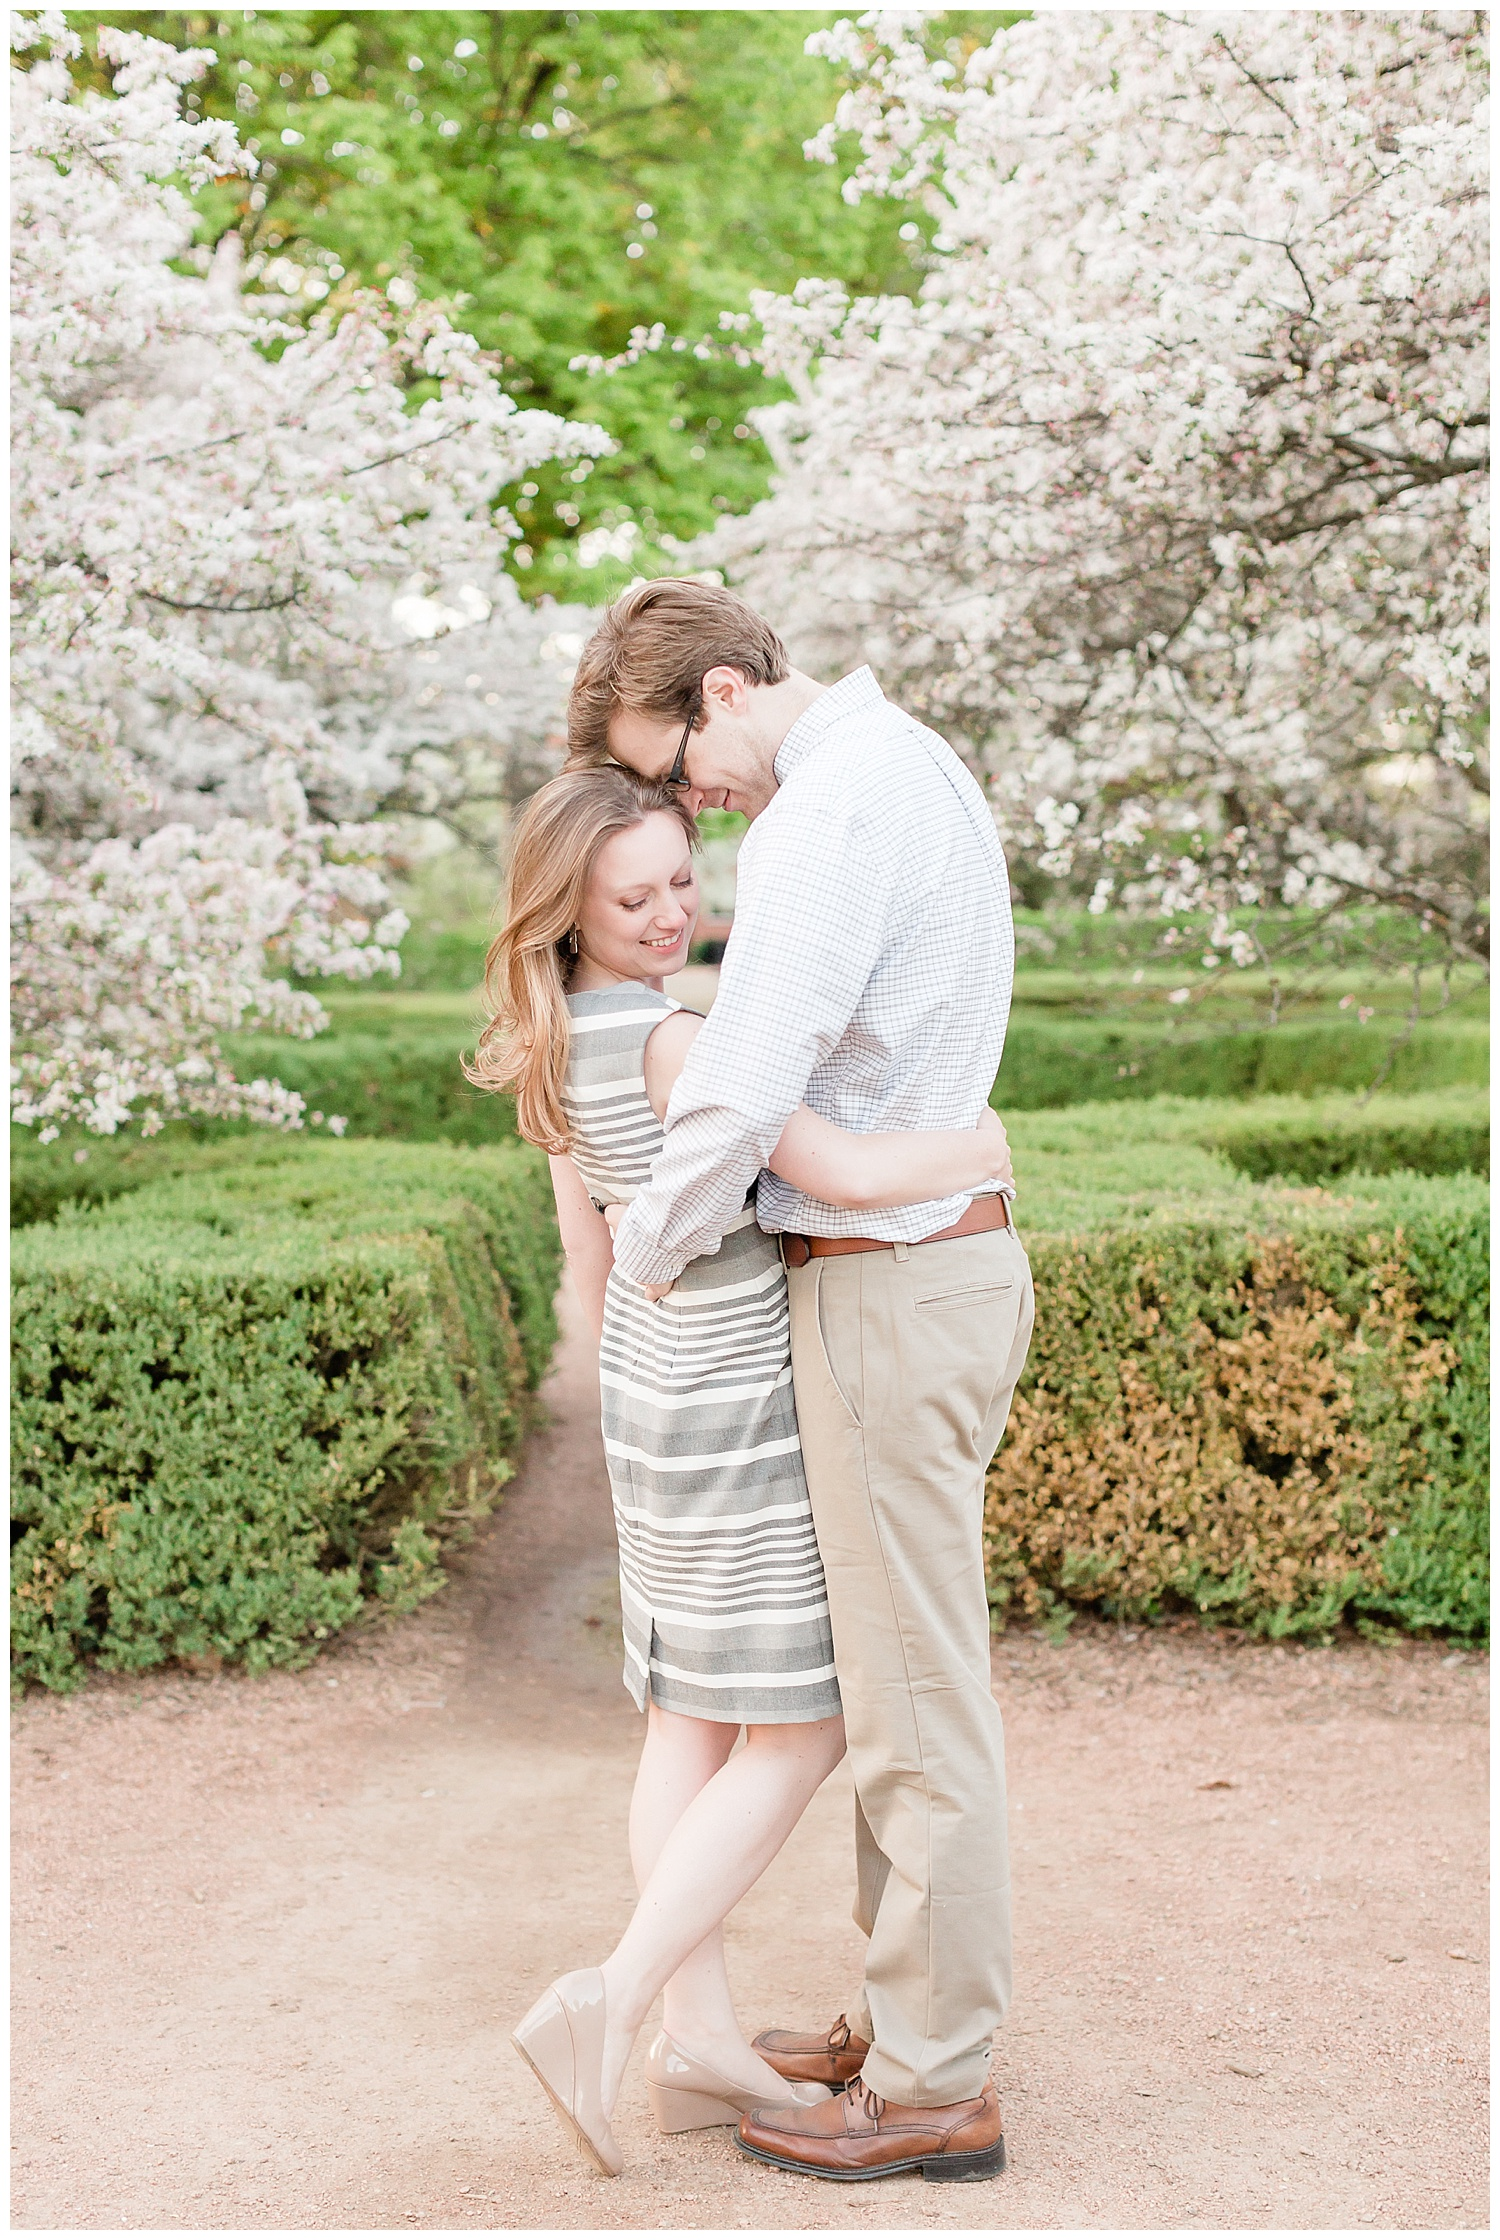 morton-arboretum-lisle-wedding-photographer-summer-engagement-session_0007.jpg